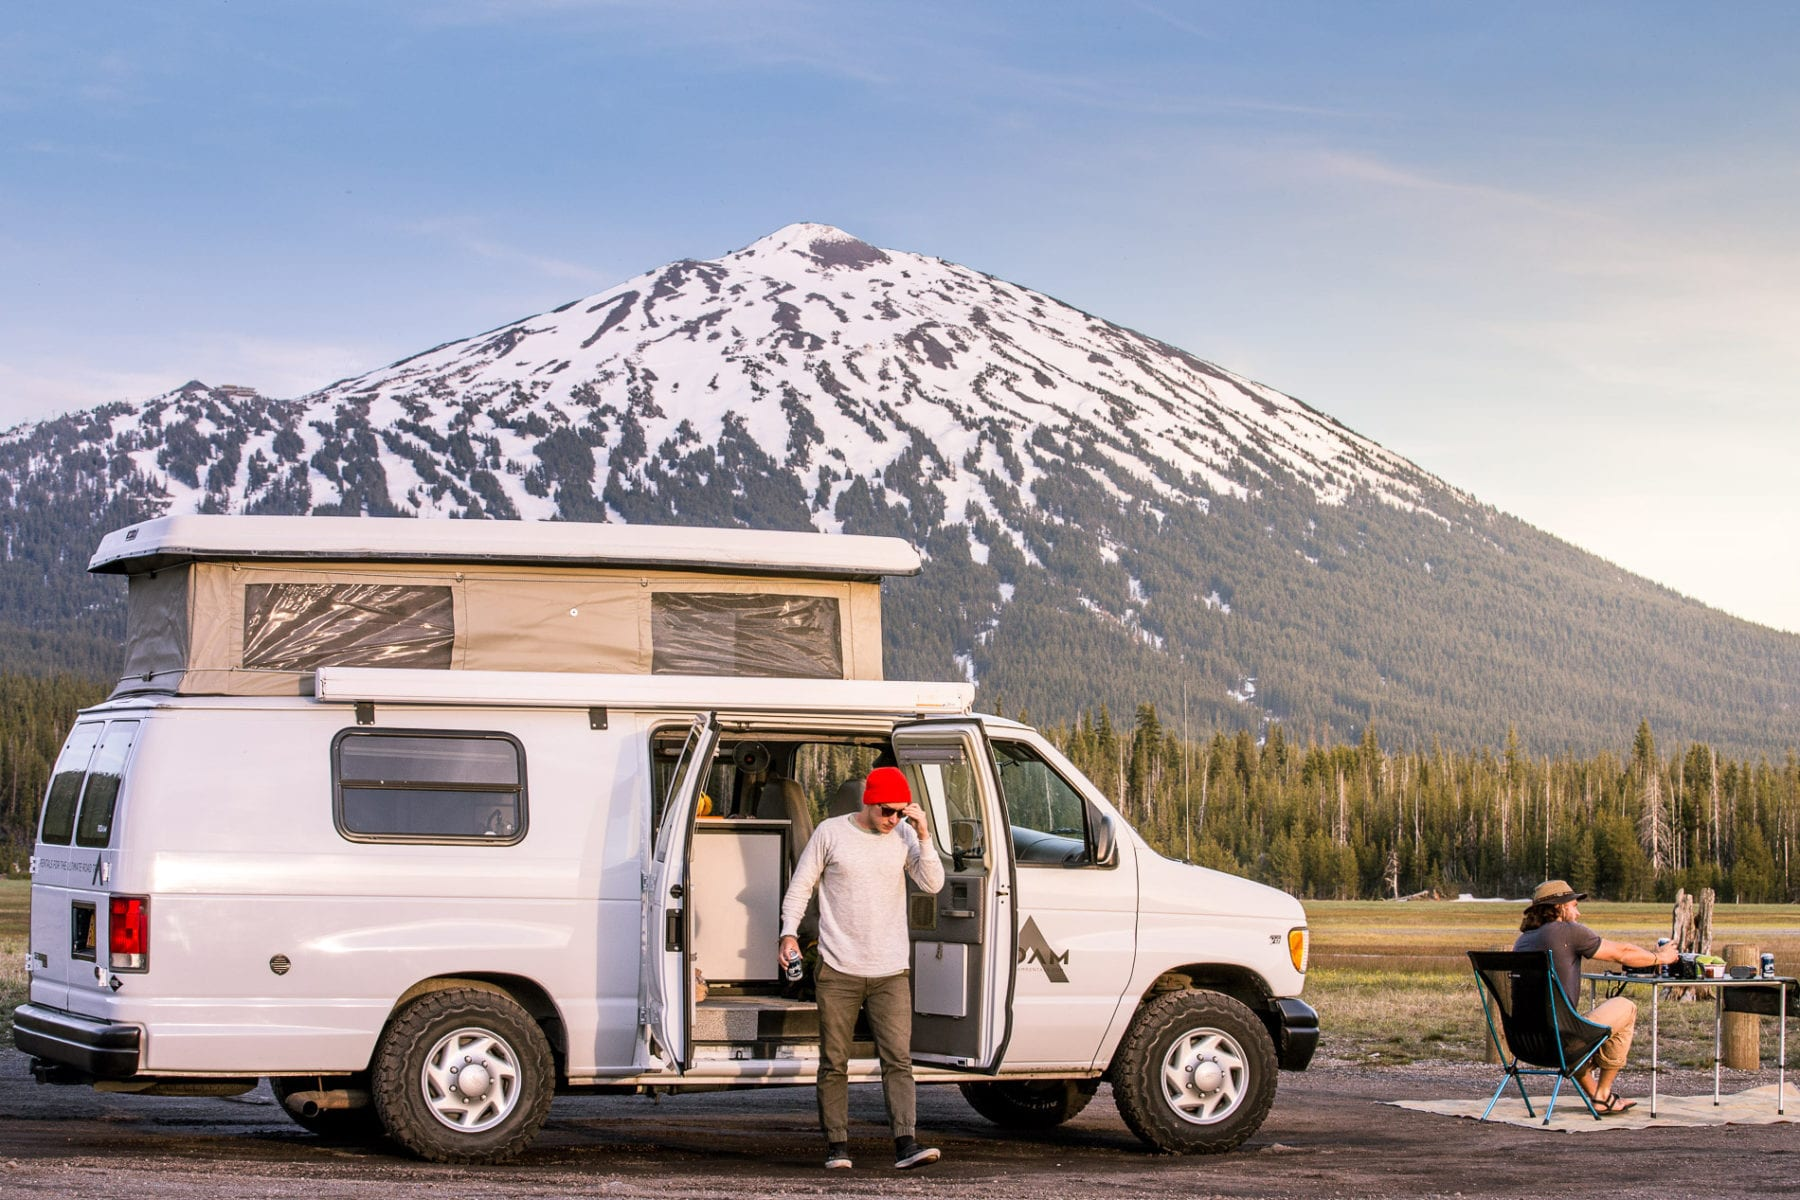 Ford Econoline Sportsmobile Van Conversion camping near Mt. Bachelor in Oregon